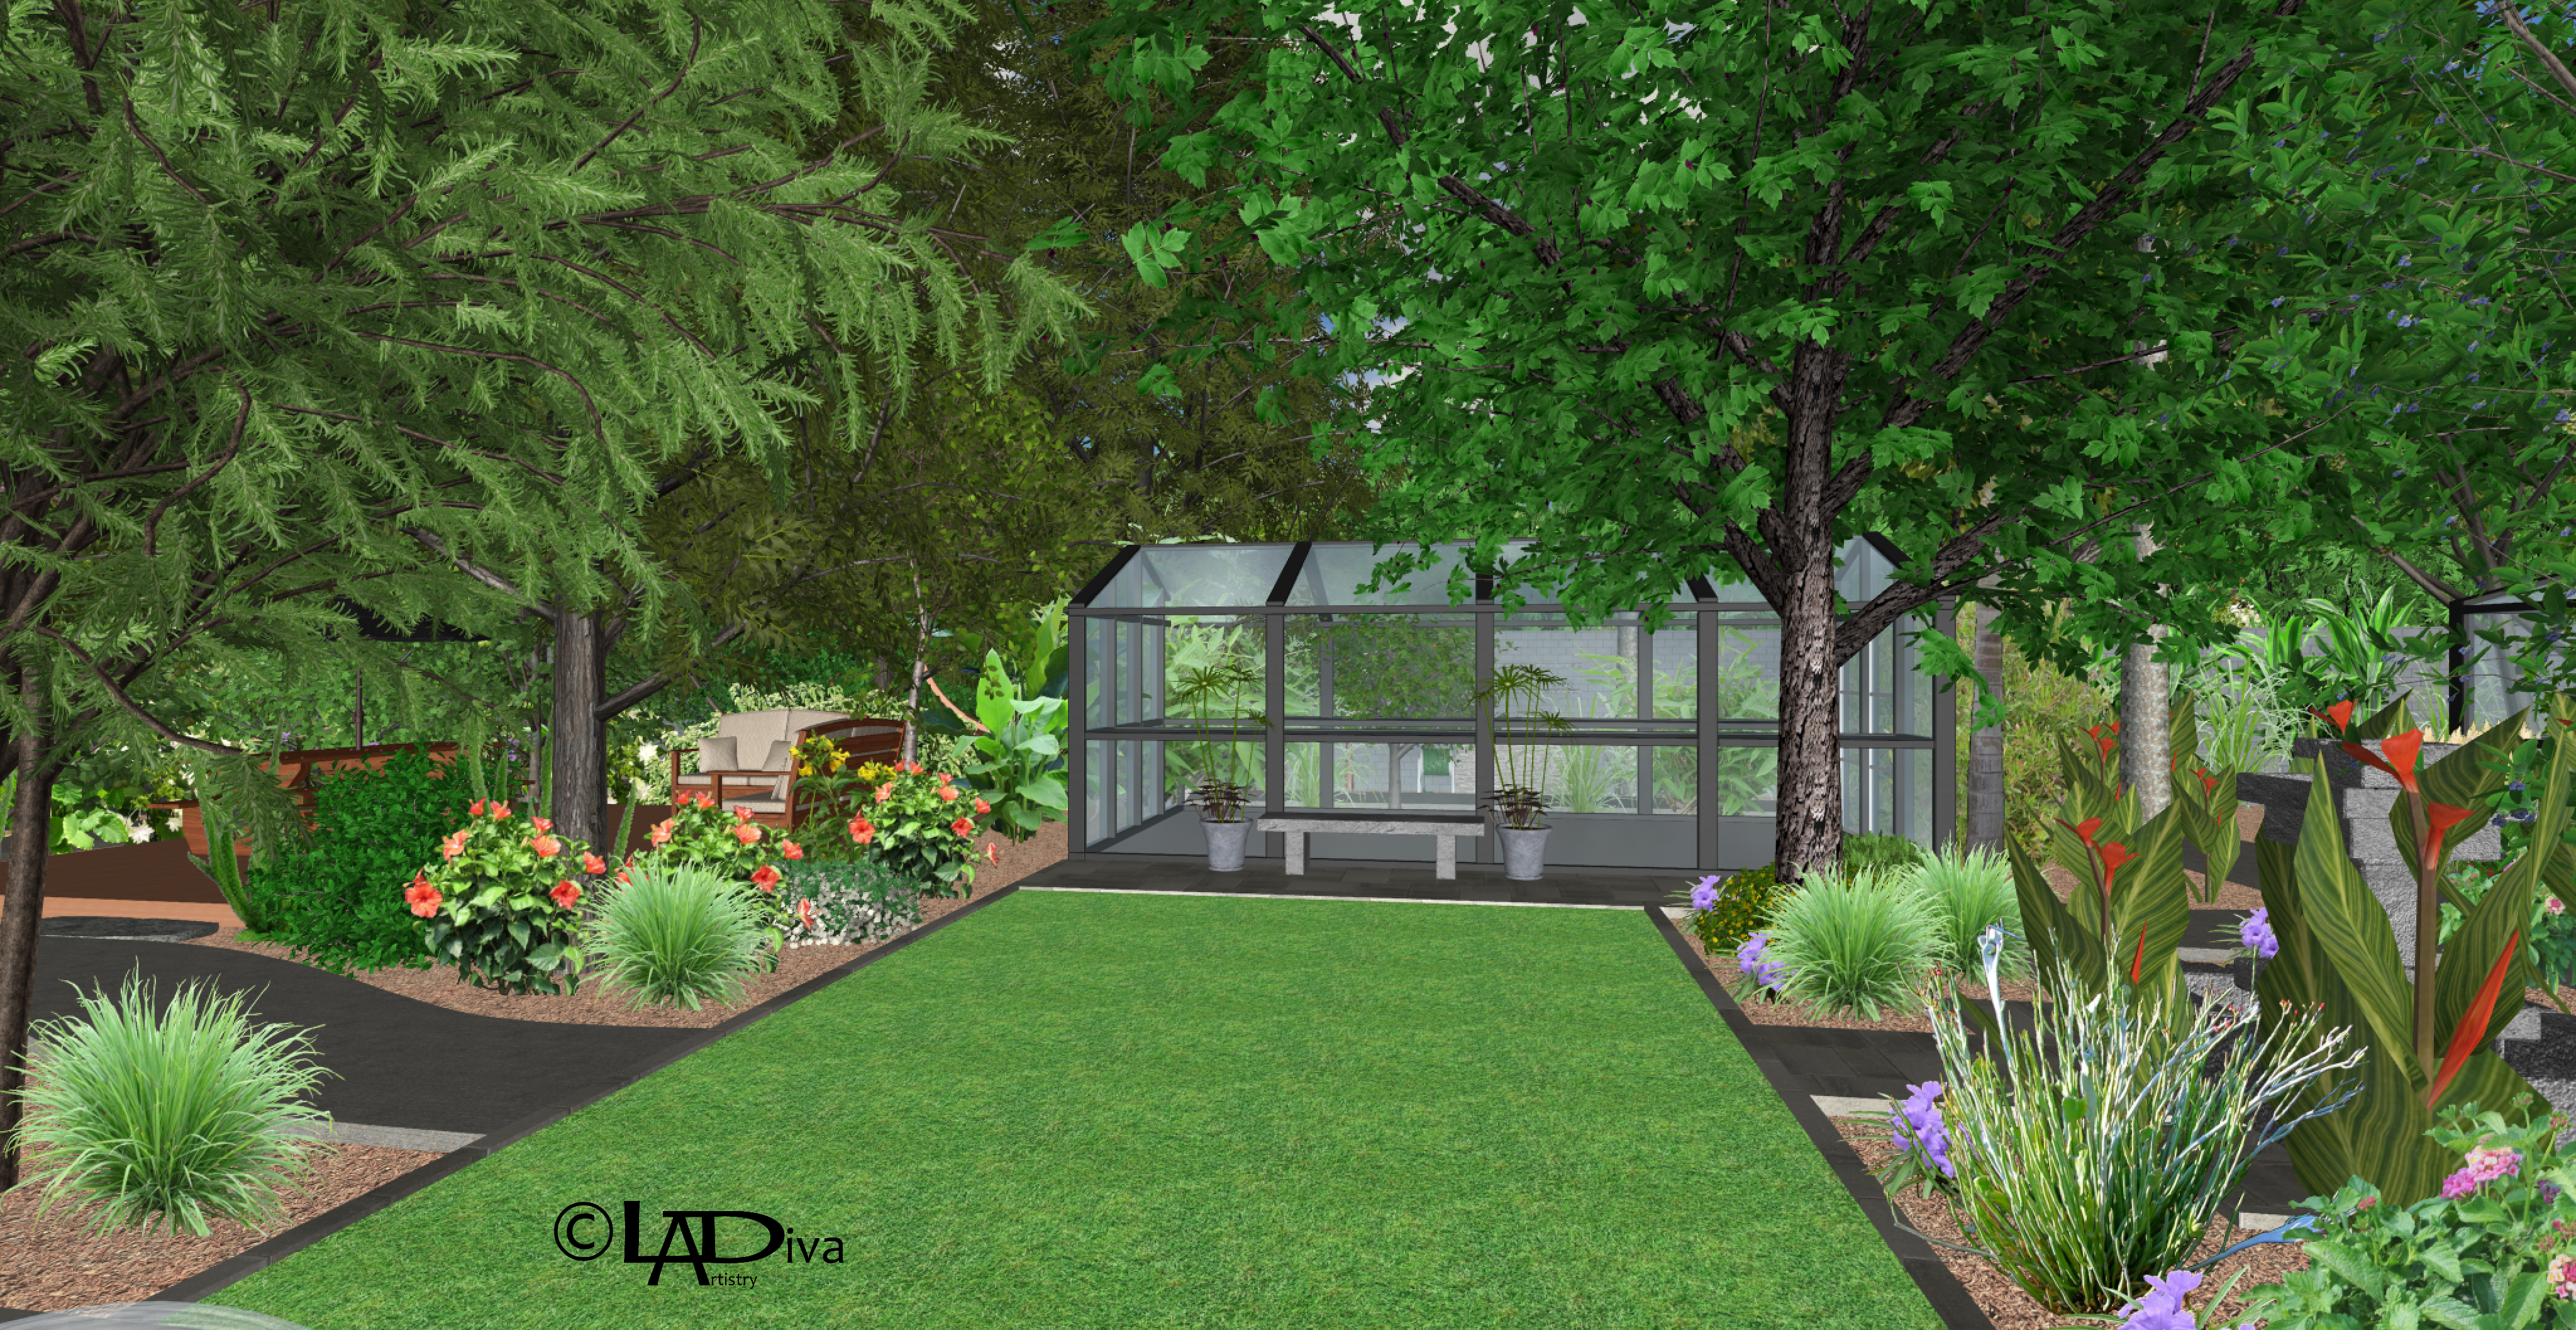 Asian Zen Garden & Animal Sanctuary with New Pool Build - Phoenix, AZ ©LADiva Artistry Landscape Design Solutions, specializing in edible & tropical garden design in Gilbert, AZ. Featuring Custom 2D Color Master Landscape Design Plans and 3D Virtual Walkthrough Tours. Cultivating beautiful, productive oases in the greater Phoenix, Arizona area showcasing tropical trees, fruit trees, edible plants & herbs in low maintenance, stunning gardens.